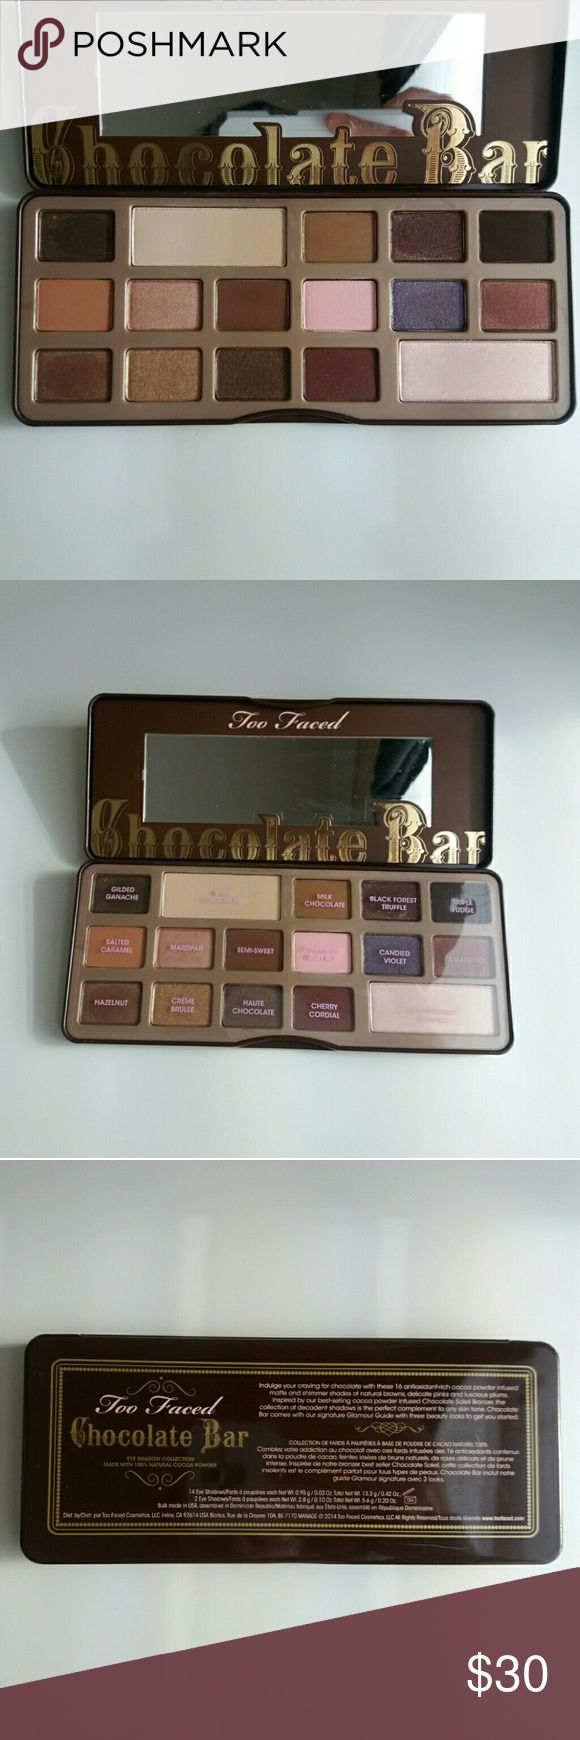 Too Faced Chocolate Bar Palette Too Faced - Original Chocolate Bar eyeshadow palette - Only swatched, just never reached for it  No trades, Reasonable offers only Too Faced Makeup Eyeshadow